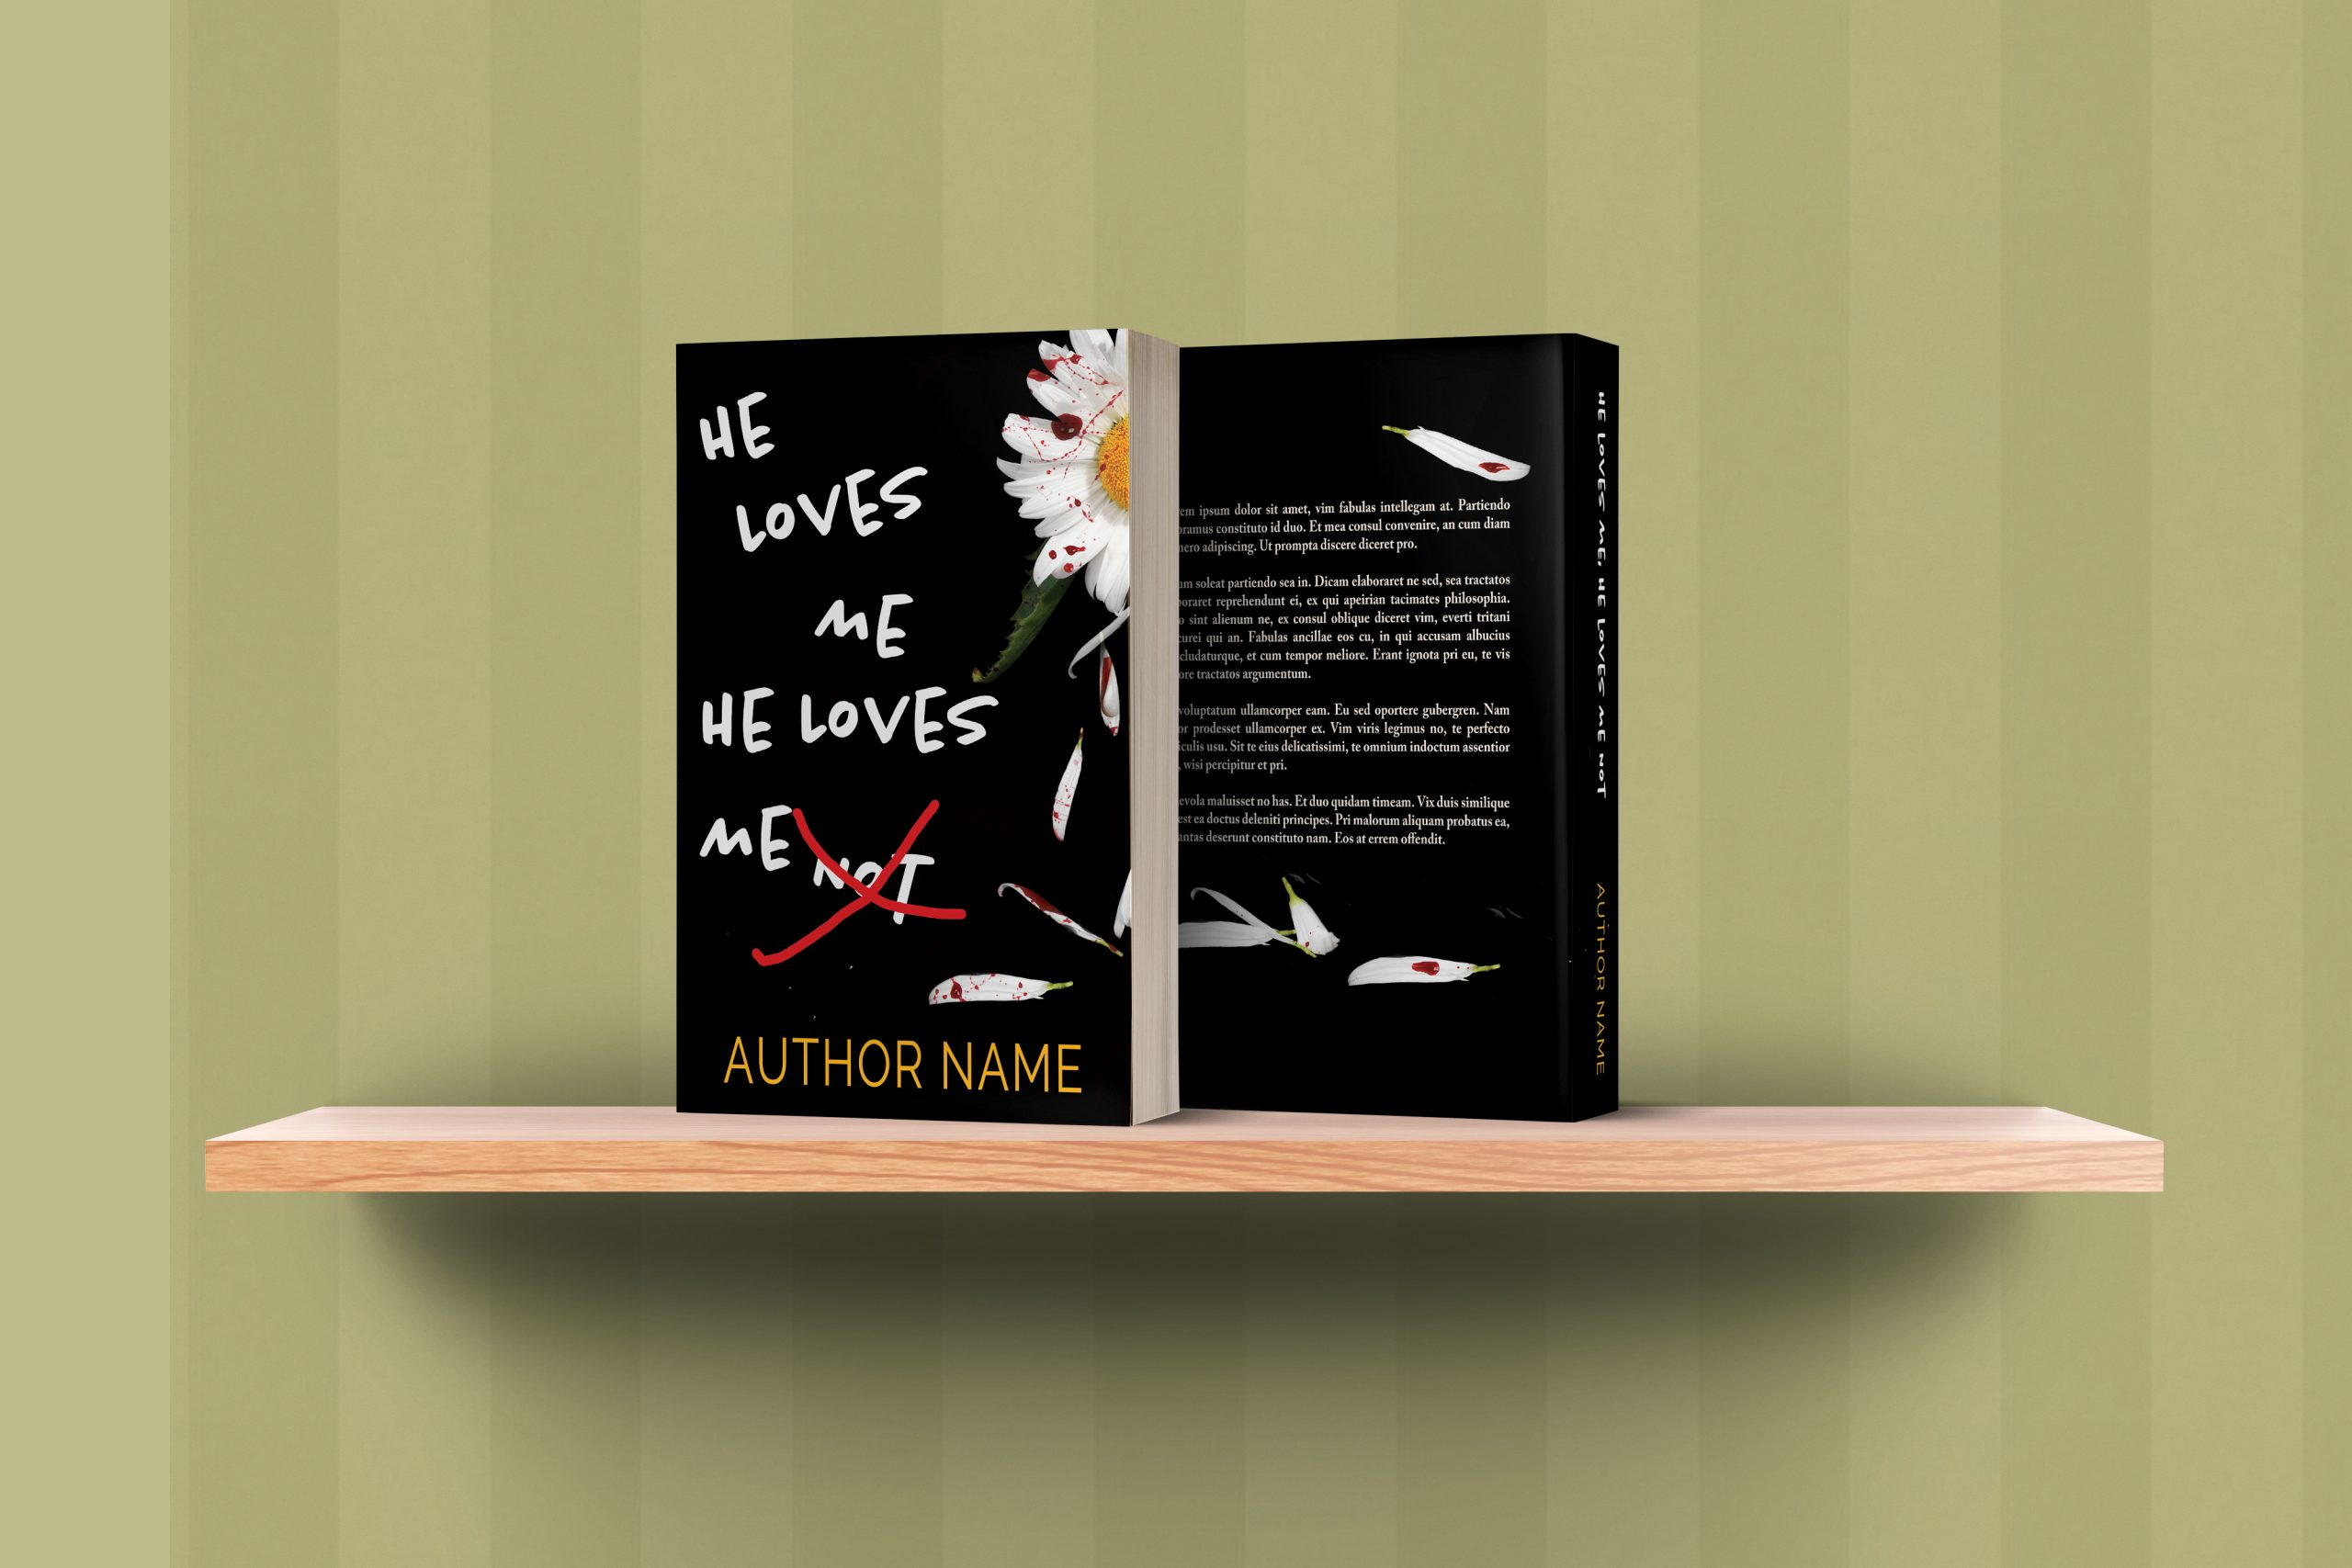 He Loves Me He Loves Me Not Mystery Thriller Premade Book Cover graphic shelf